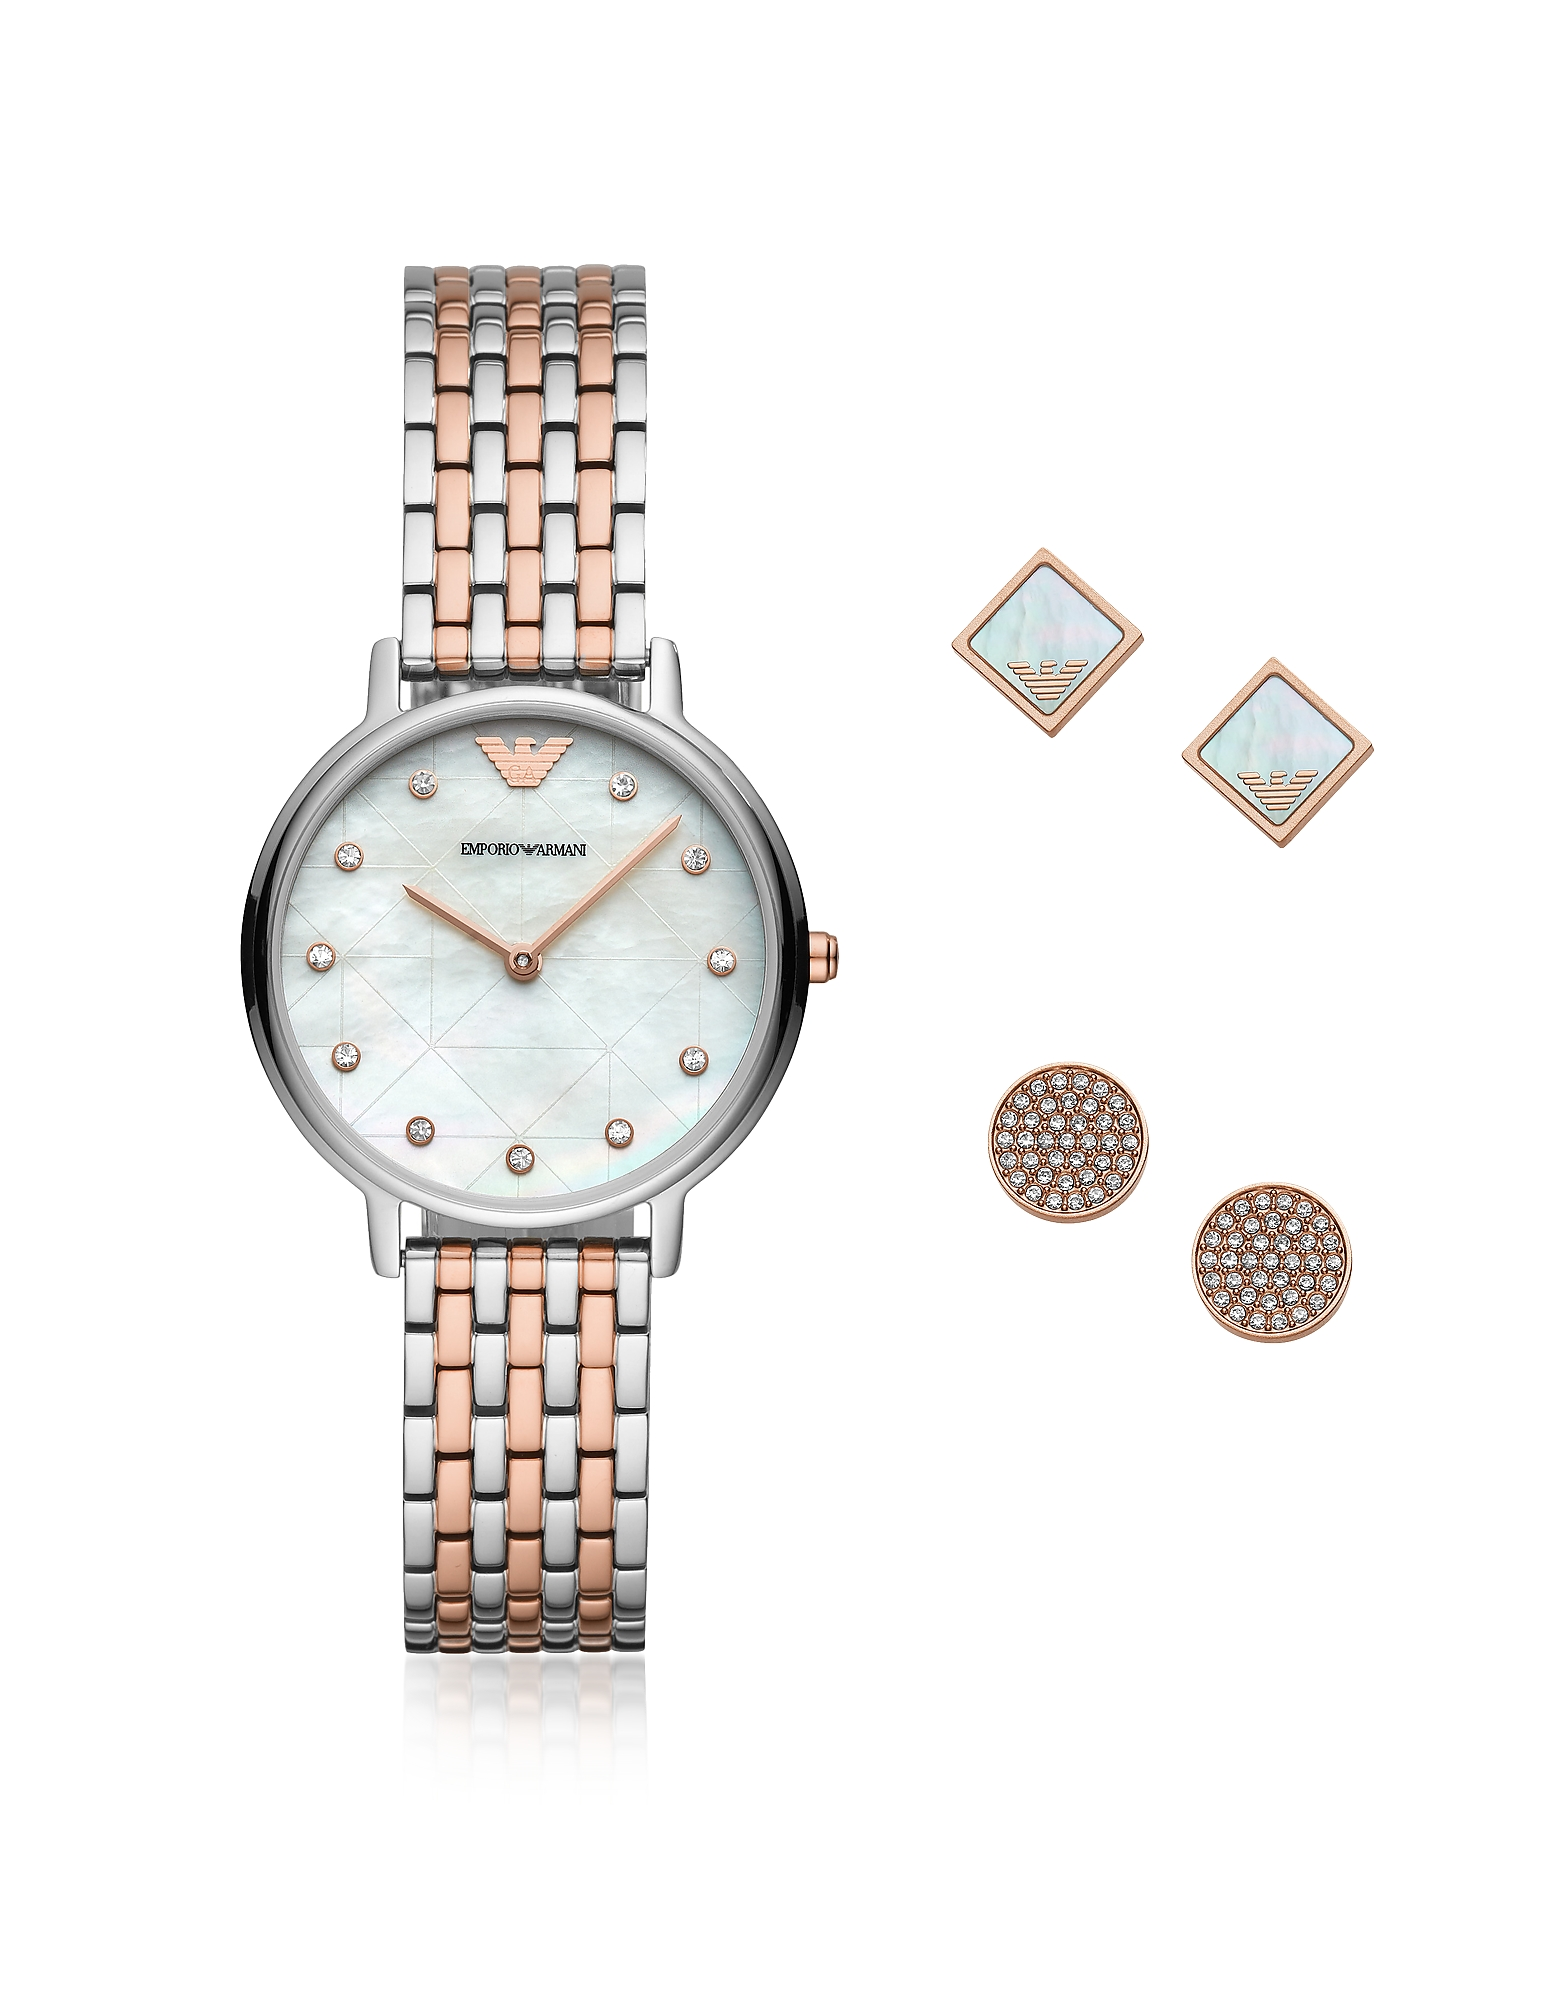 Emporio Armani Designer Women's Watches, Two-Tone Kappa Watch and Earring Set